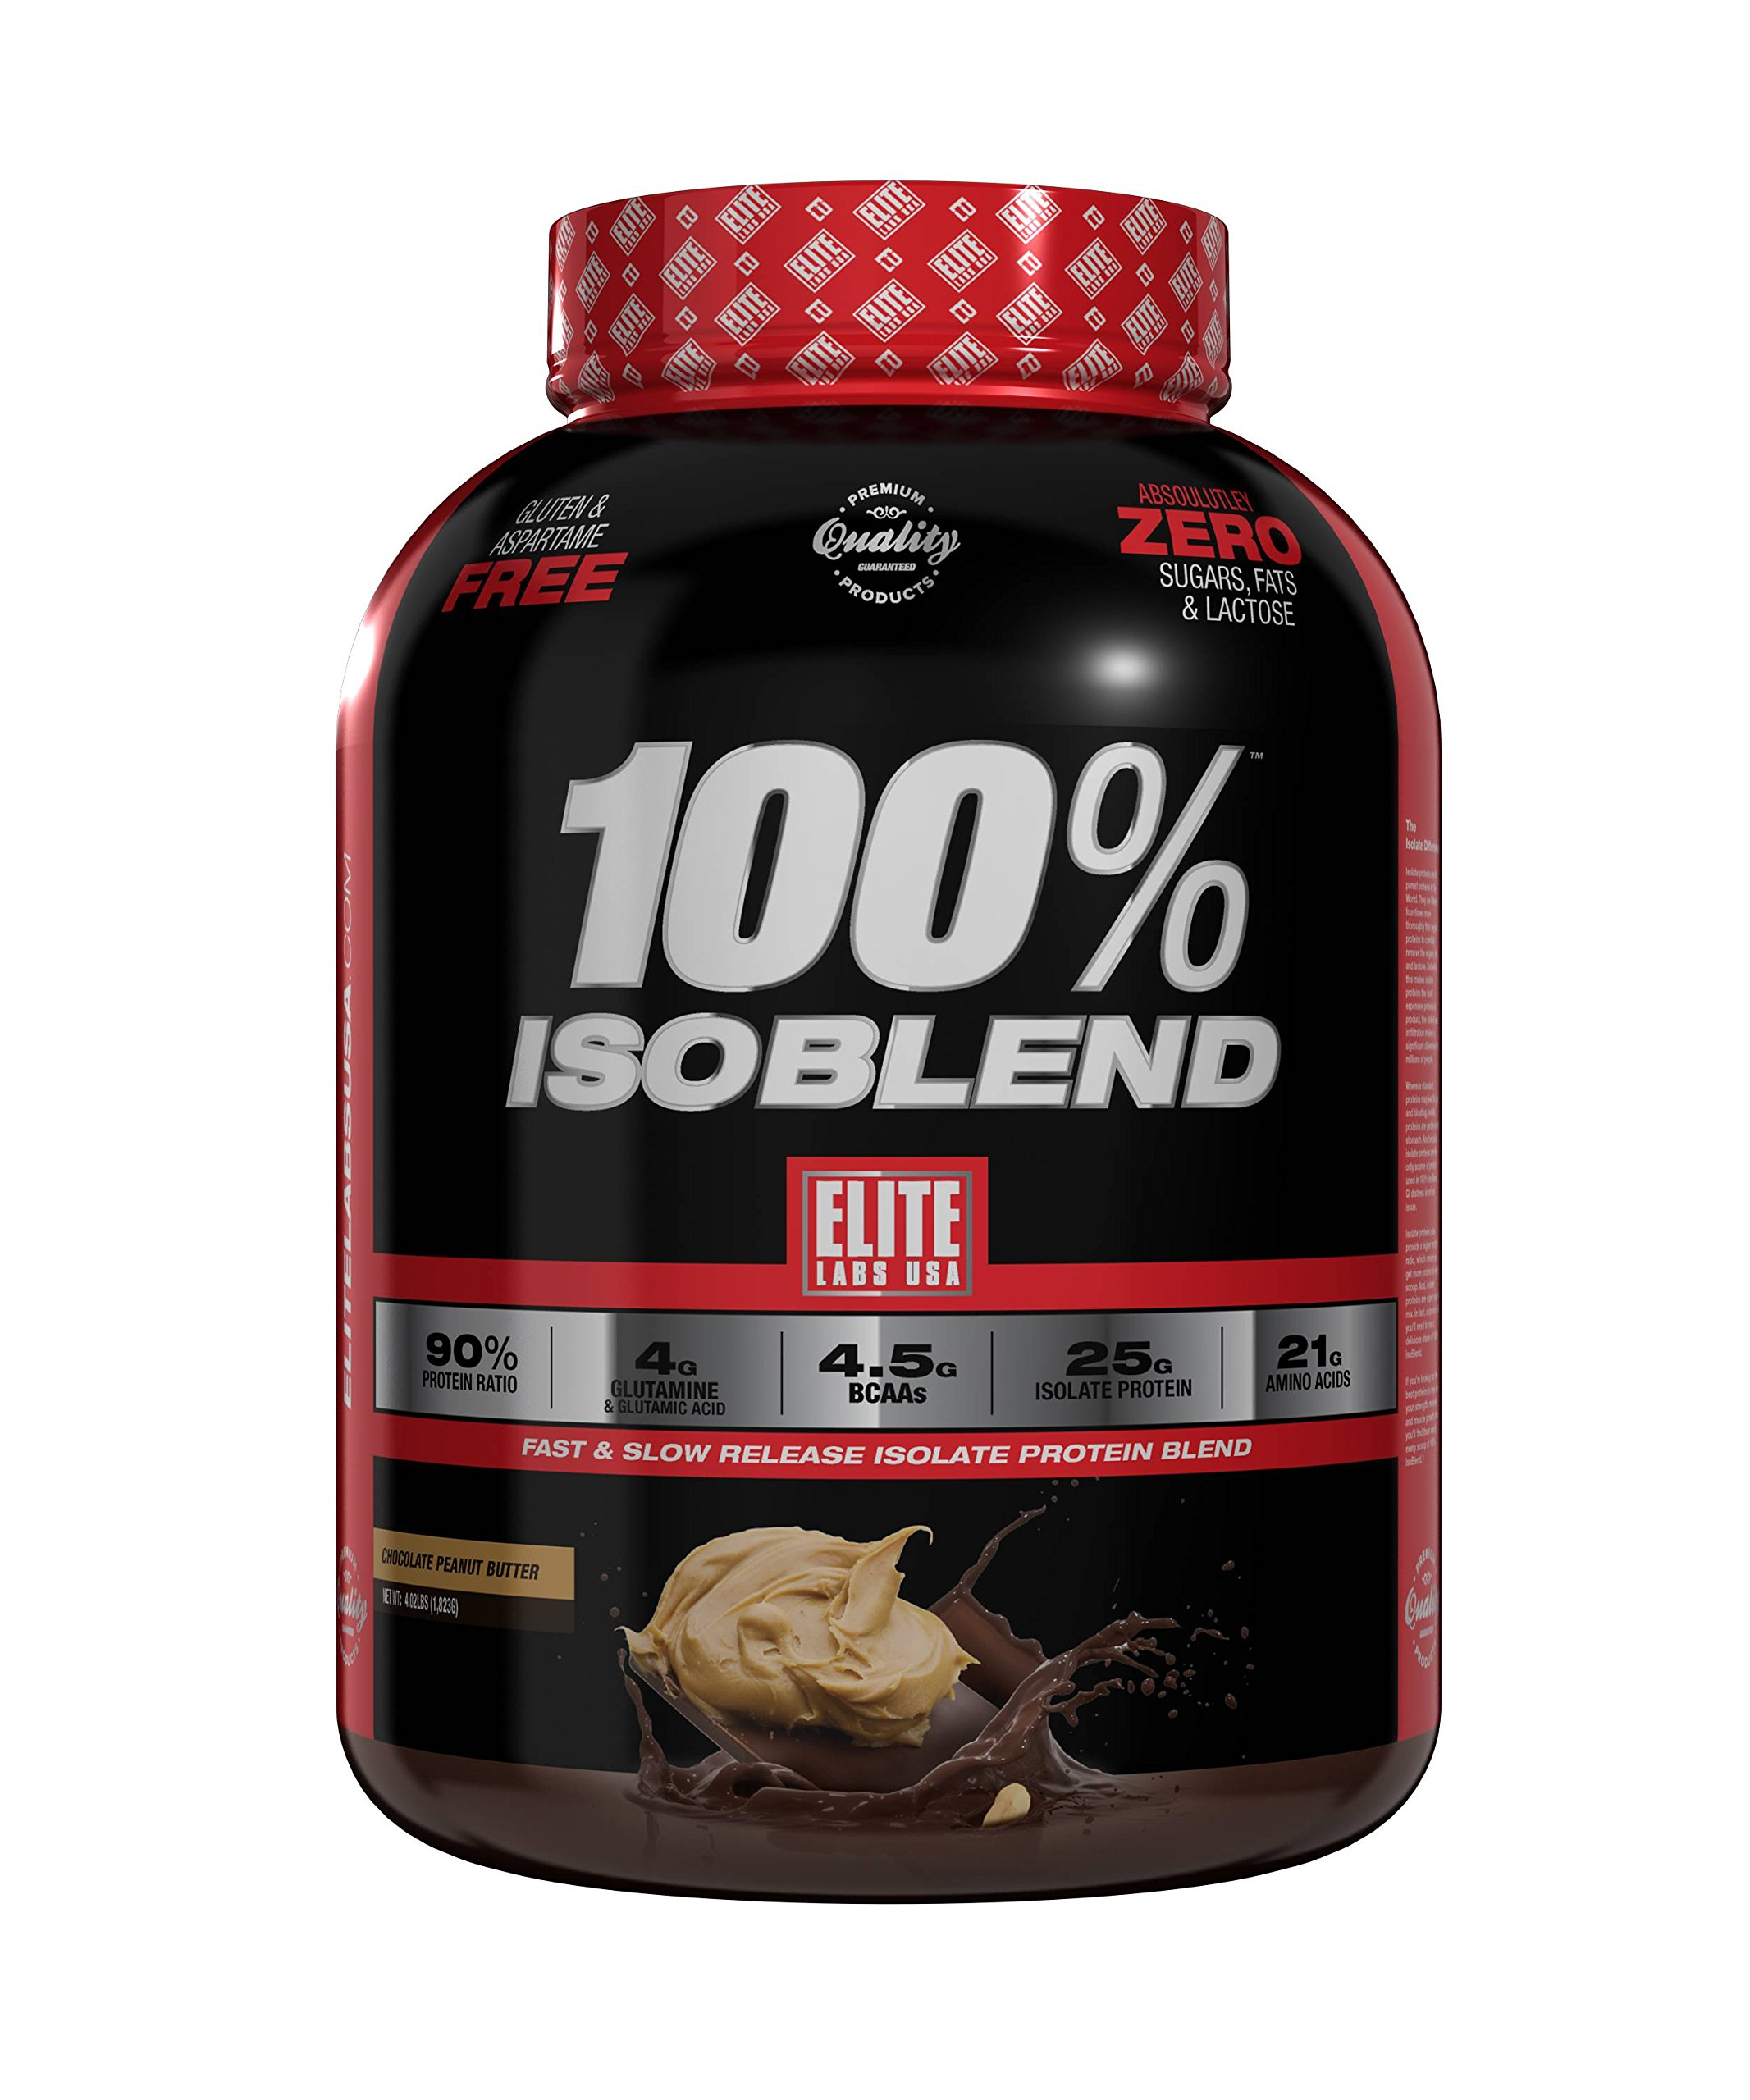 Elite Labs USA 100% ISOBLEND 4.02 LBS CHOCOLATE PEANUT BUTTER